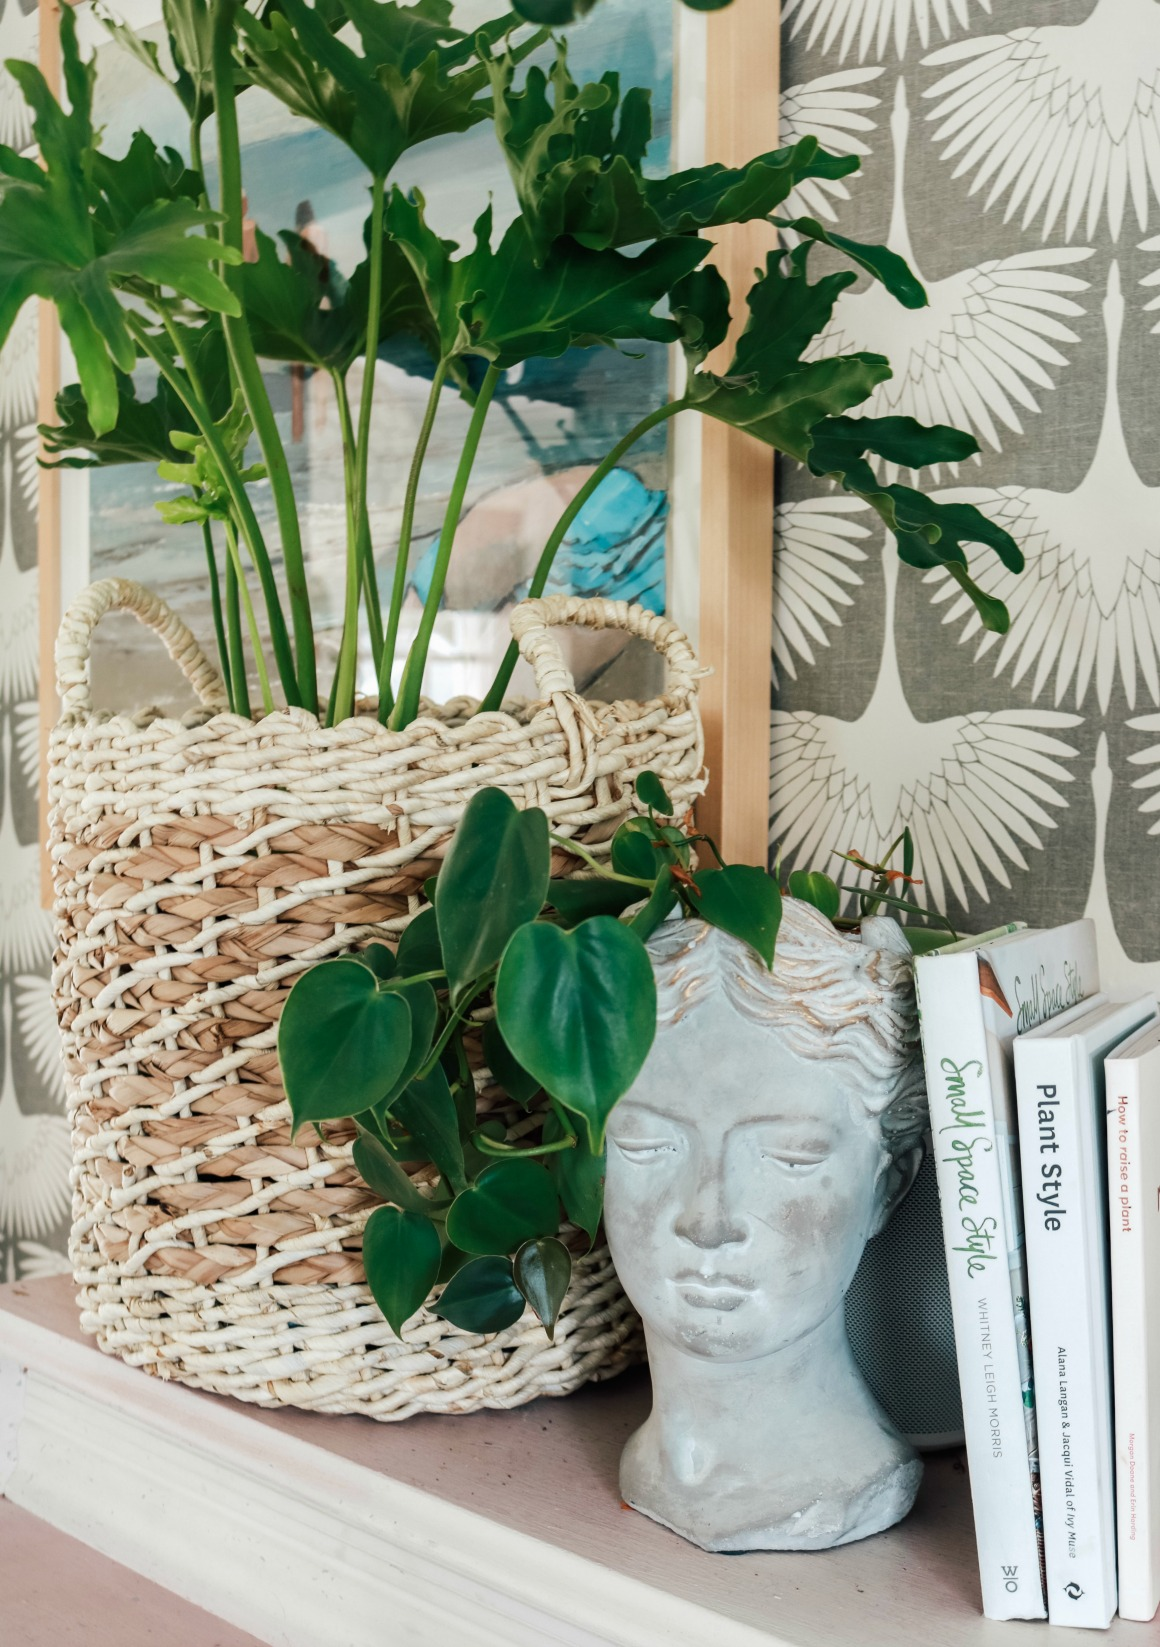 How to use Essential Oils for Houseplants